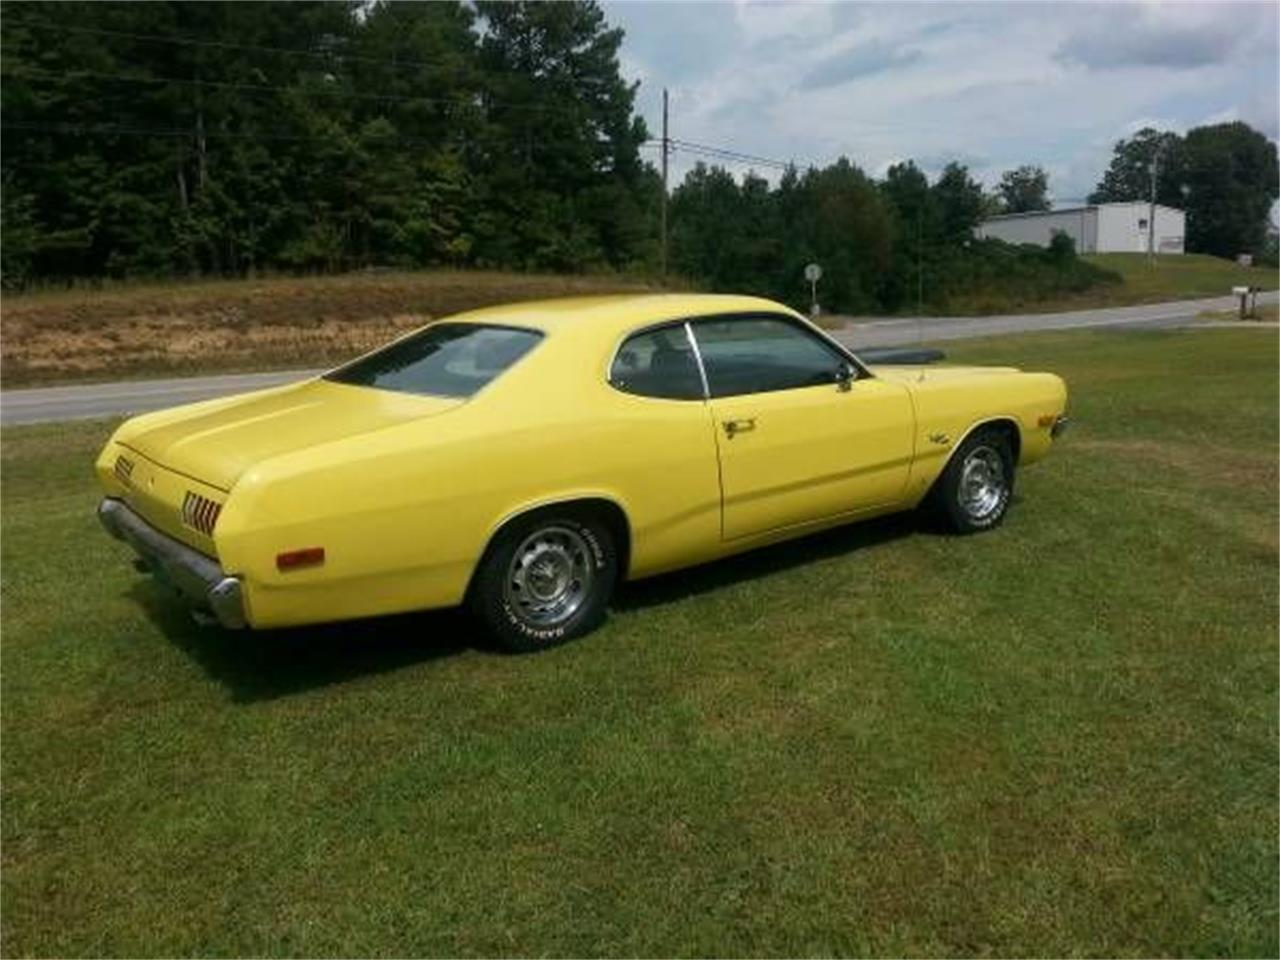 Large Picture of '72 Demon - $13,995.00 Offered by Classic Car Deals - OOEX